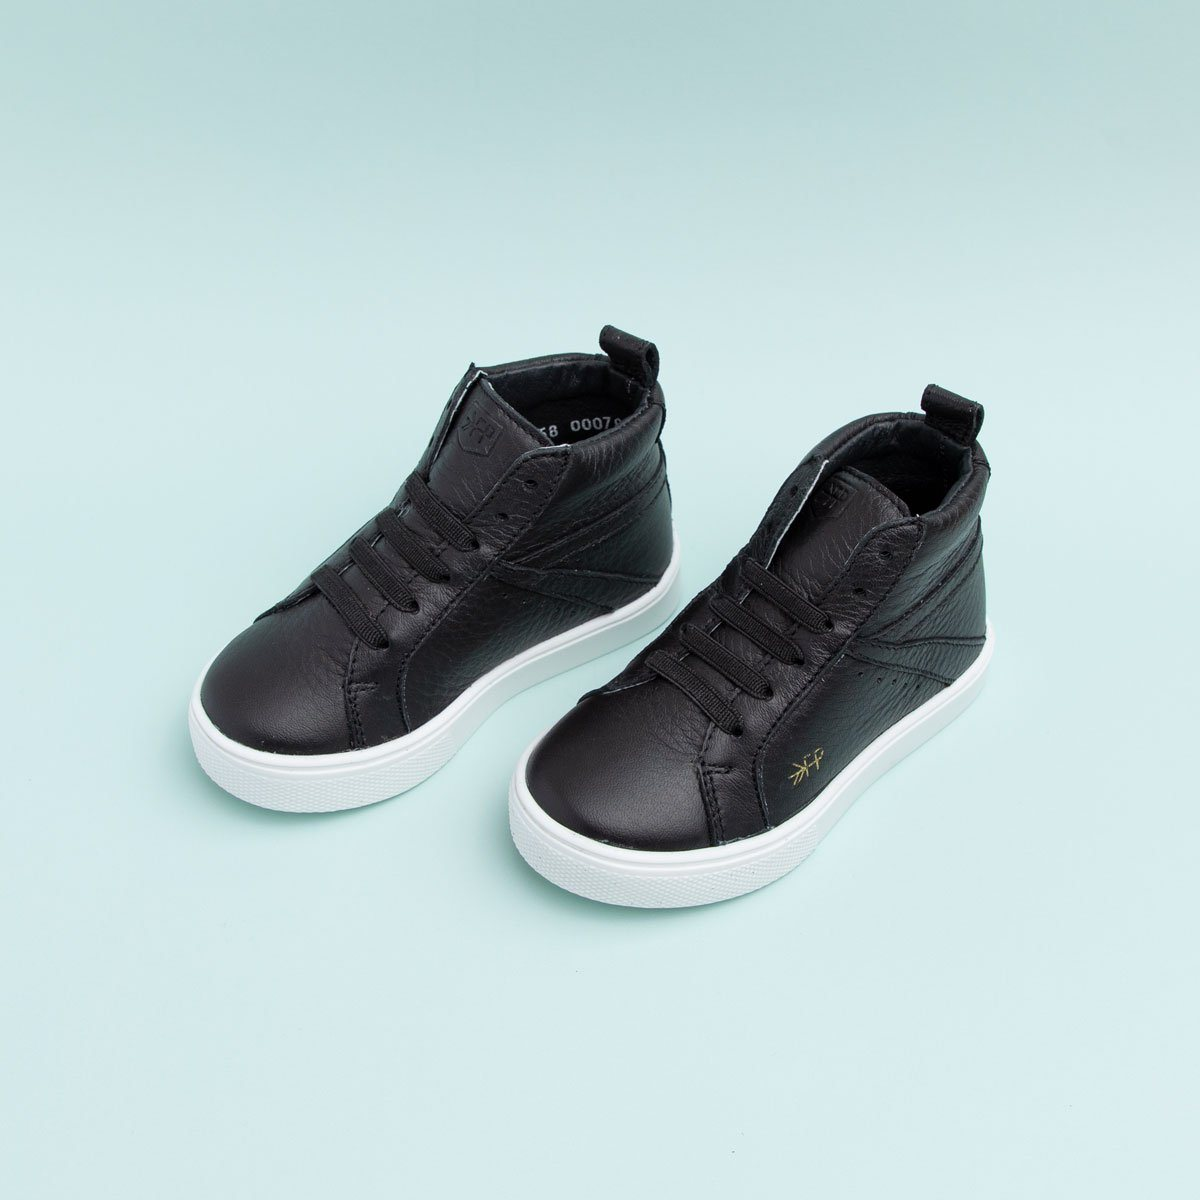 Ebony High Top Sneaker Kids - High Top Sneaker Kids Sneakers